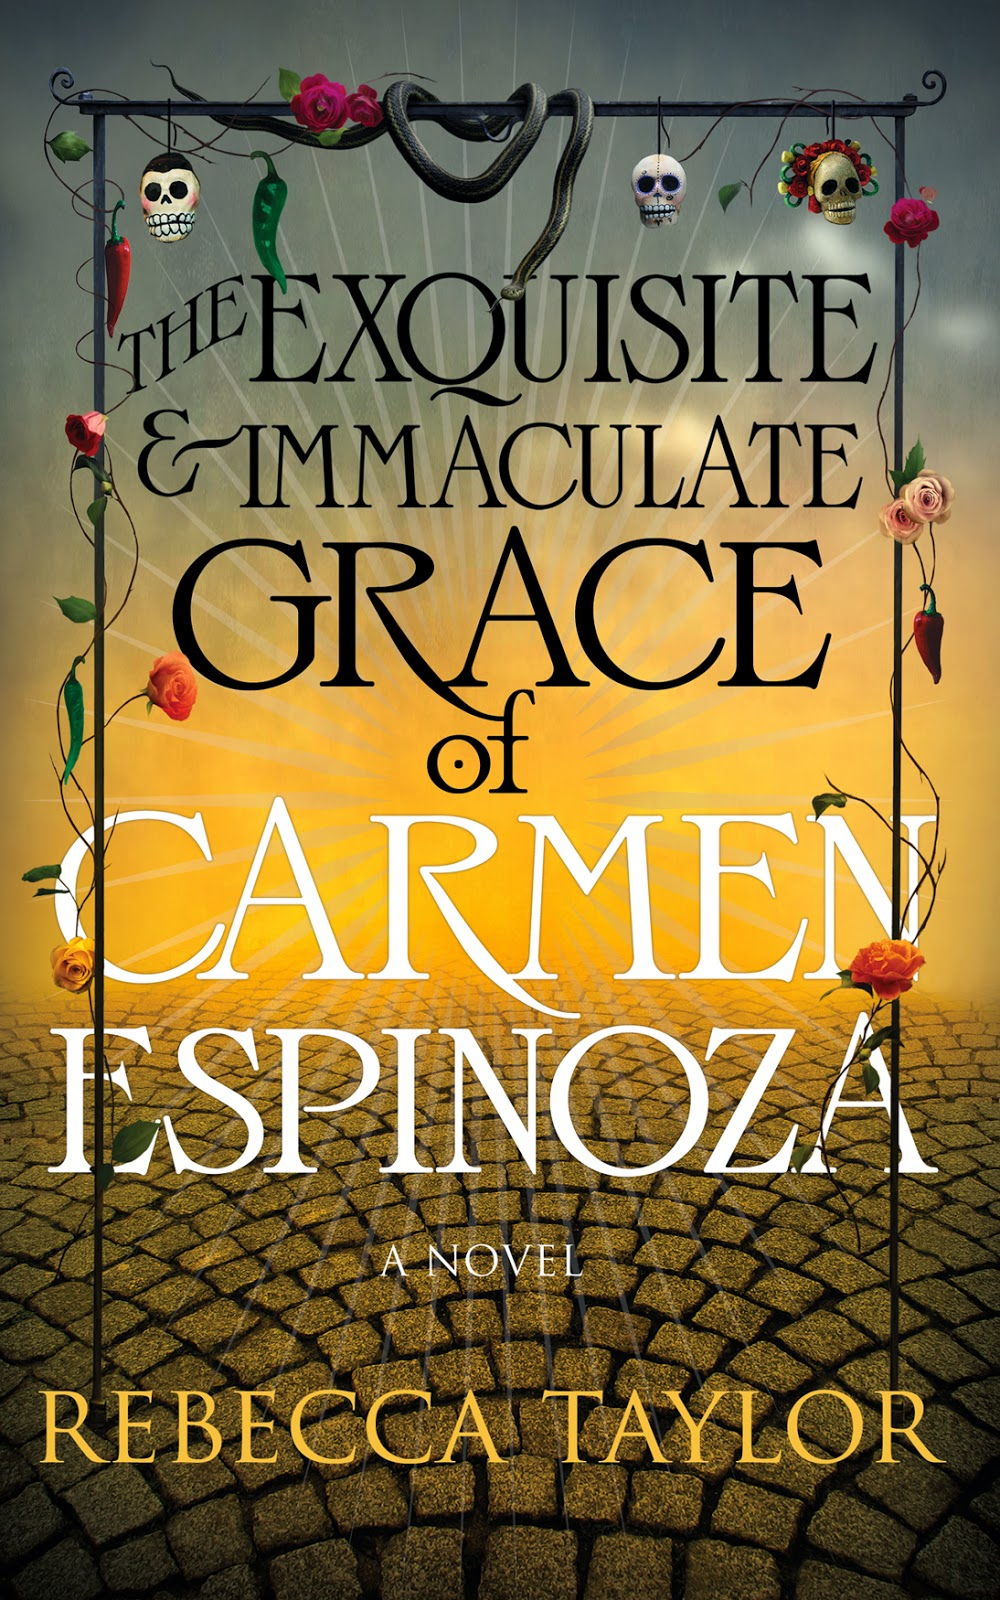 http://www.amazon.com/Exquisite-Immaculate-Grace-Carmen-Espinoza-ebook/dp/B00KGO52D0/ref=sr_1_1?ie=UTF8&qid=1425870003&sr=8-1&keywords=carmen+espinoza